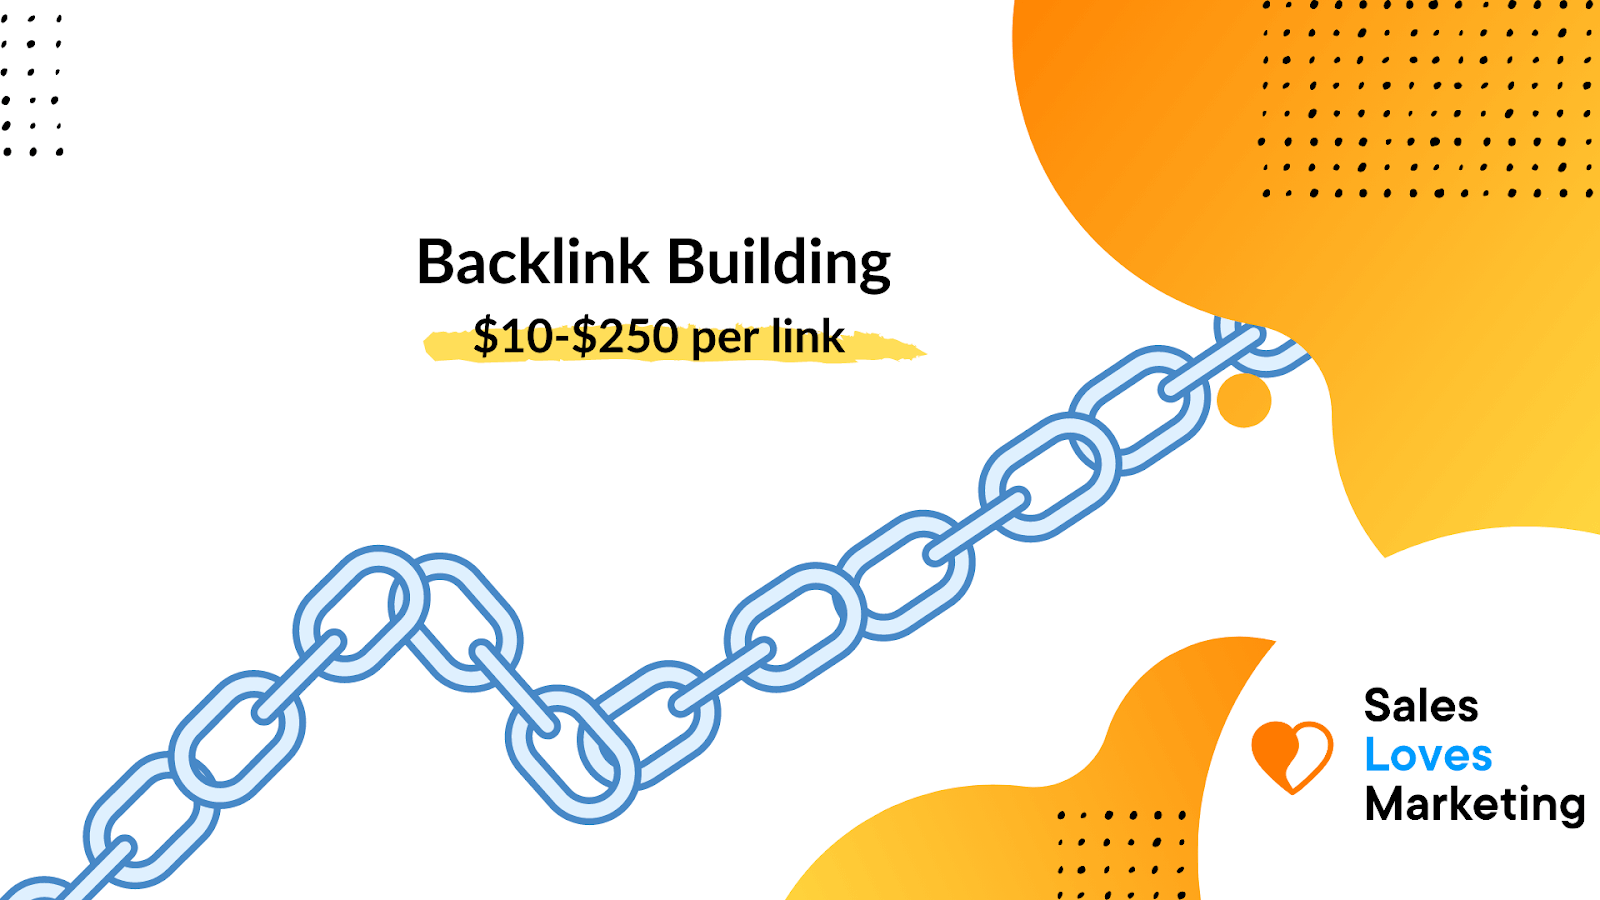 cost of backlink building on average per link when you buy them